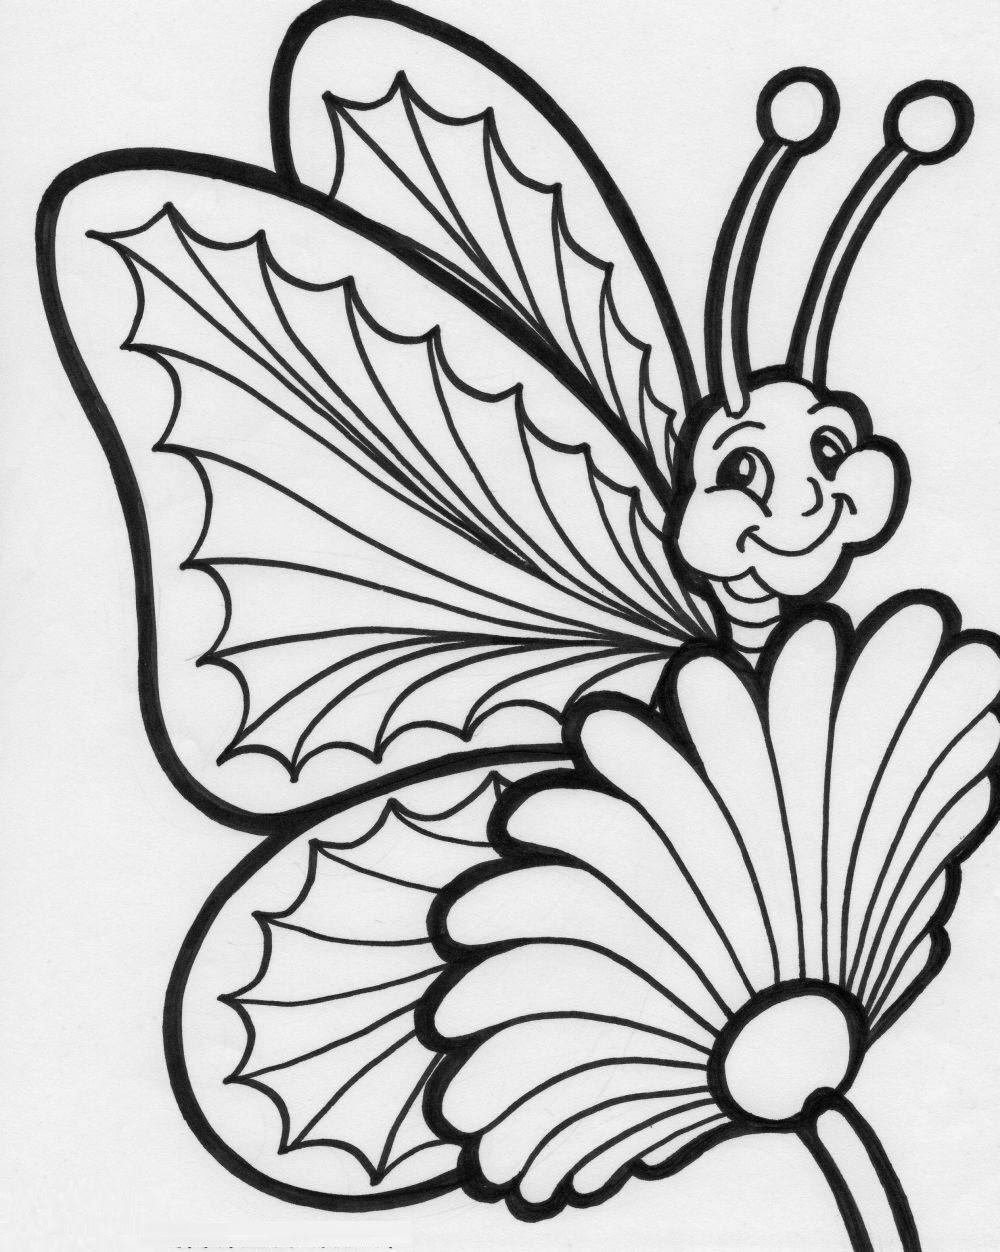 butterfly coloring sheet printable printable butterfly coloring pages for kids cool2bkids sheet printable coloring butterfly